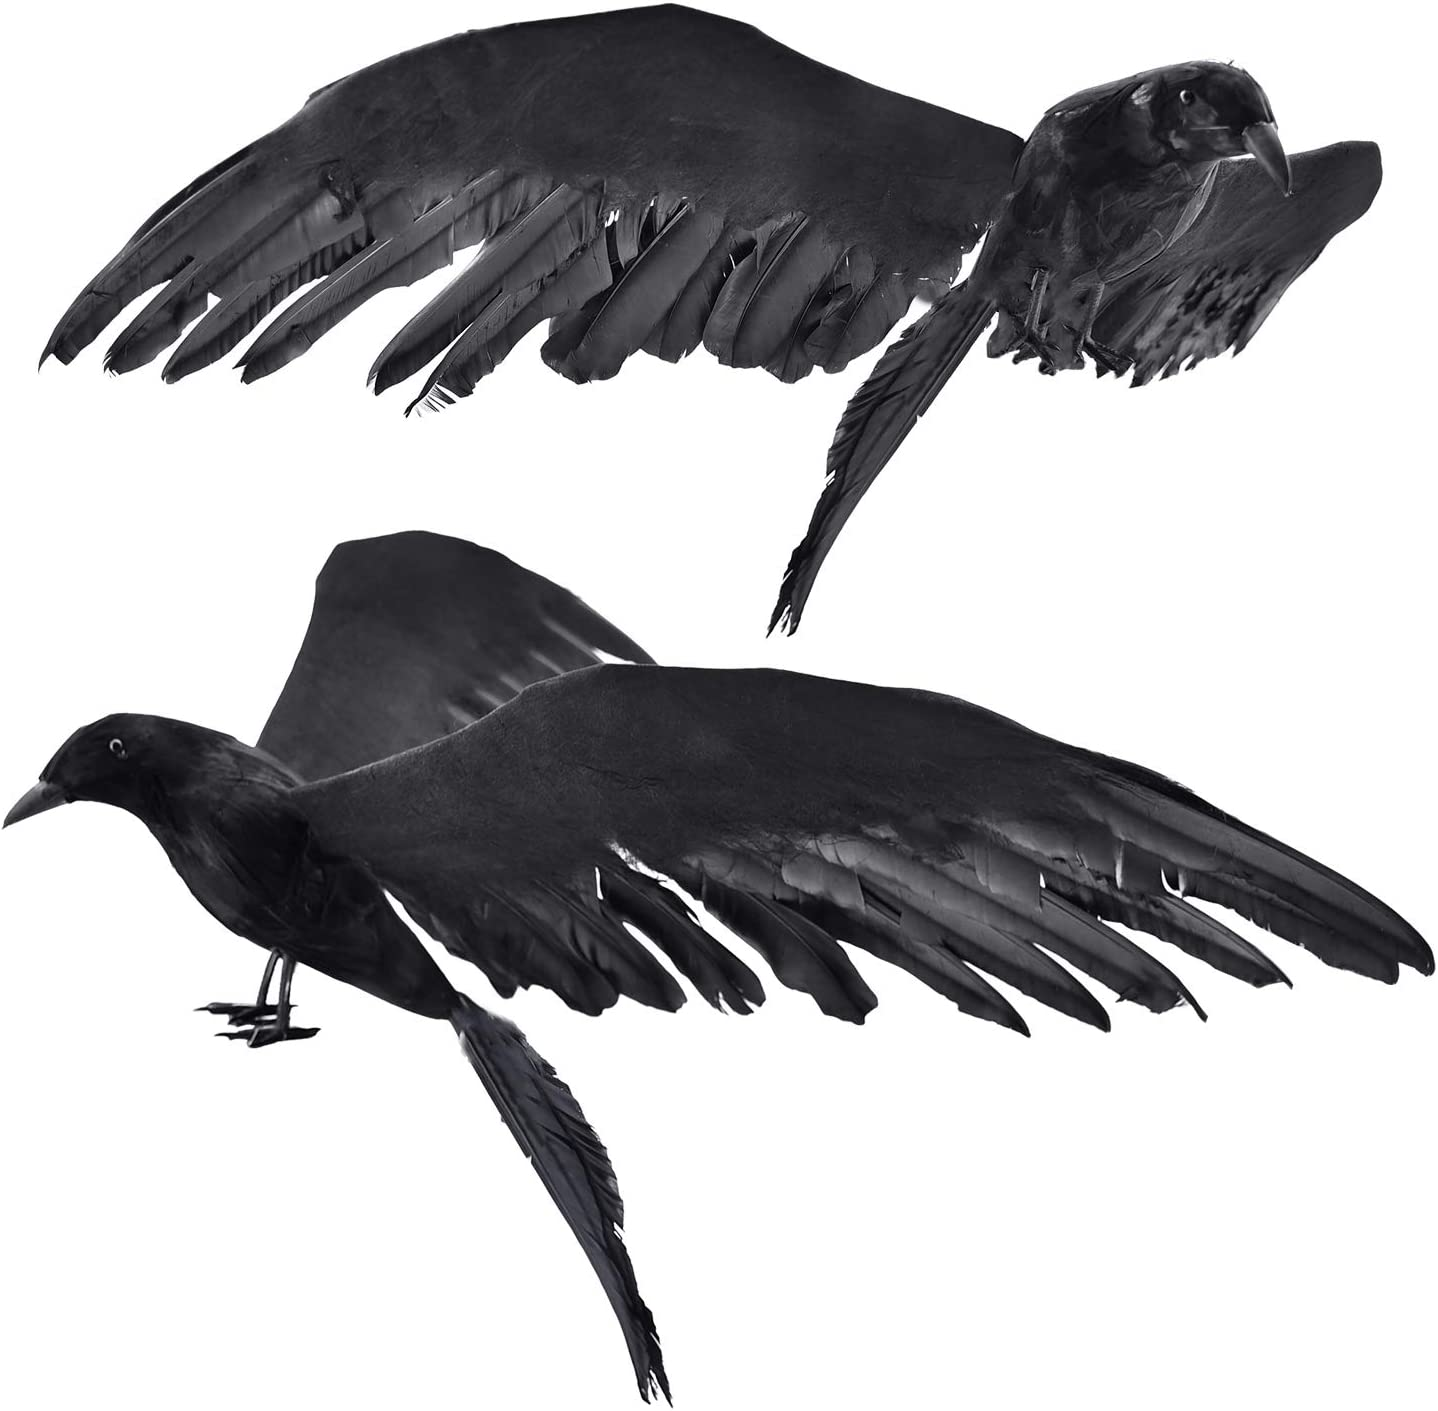 GEJRIO Halloween Realistic Crows, 2-Pack 14.5inch Halloween Black Feathered Crows, Large Handmade Crow Prop for Indoor Outdoor Ravens Birds Decoration